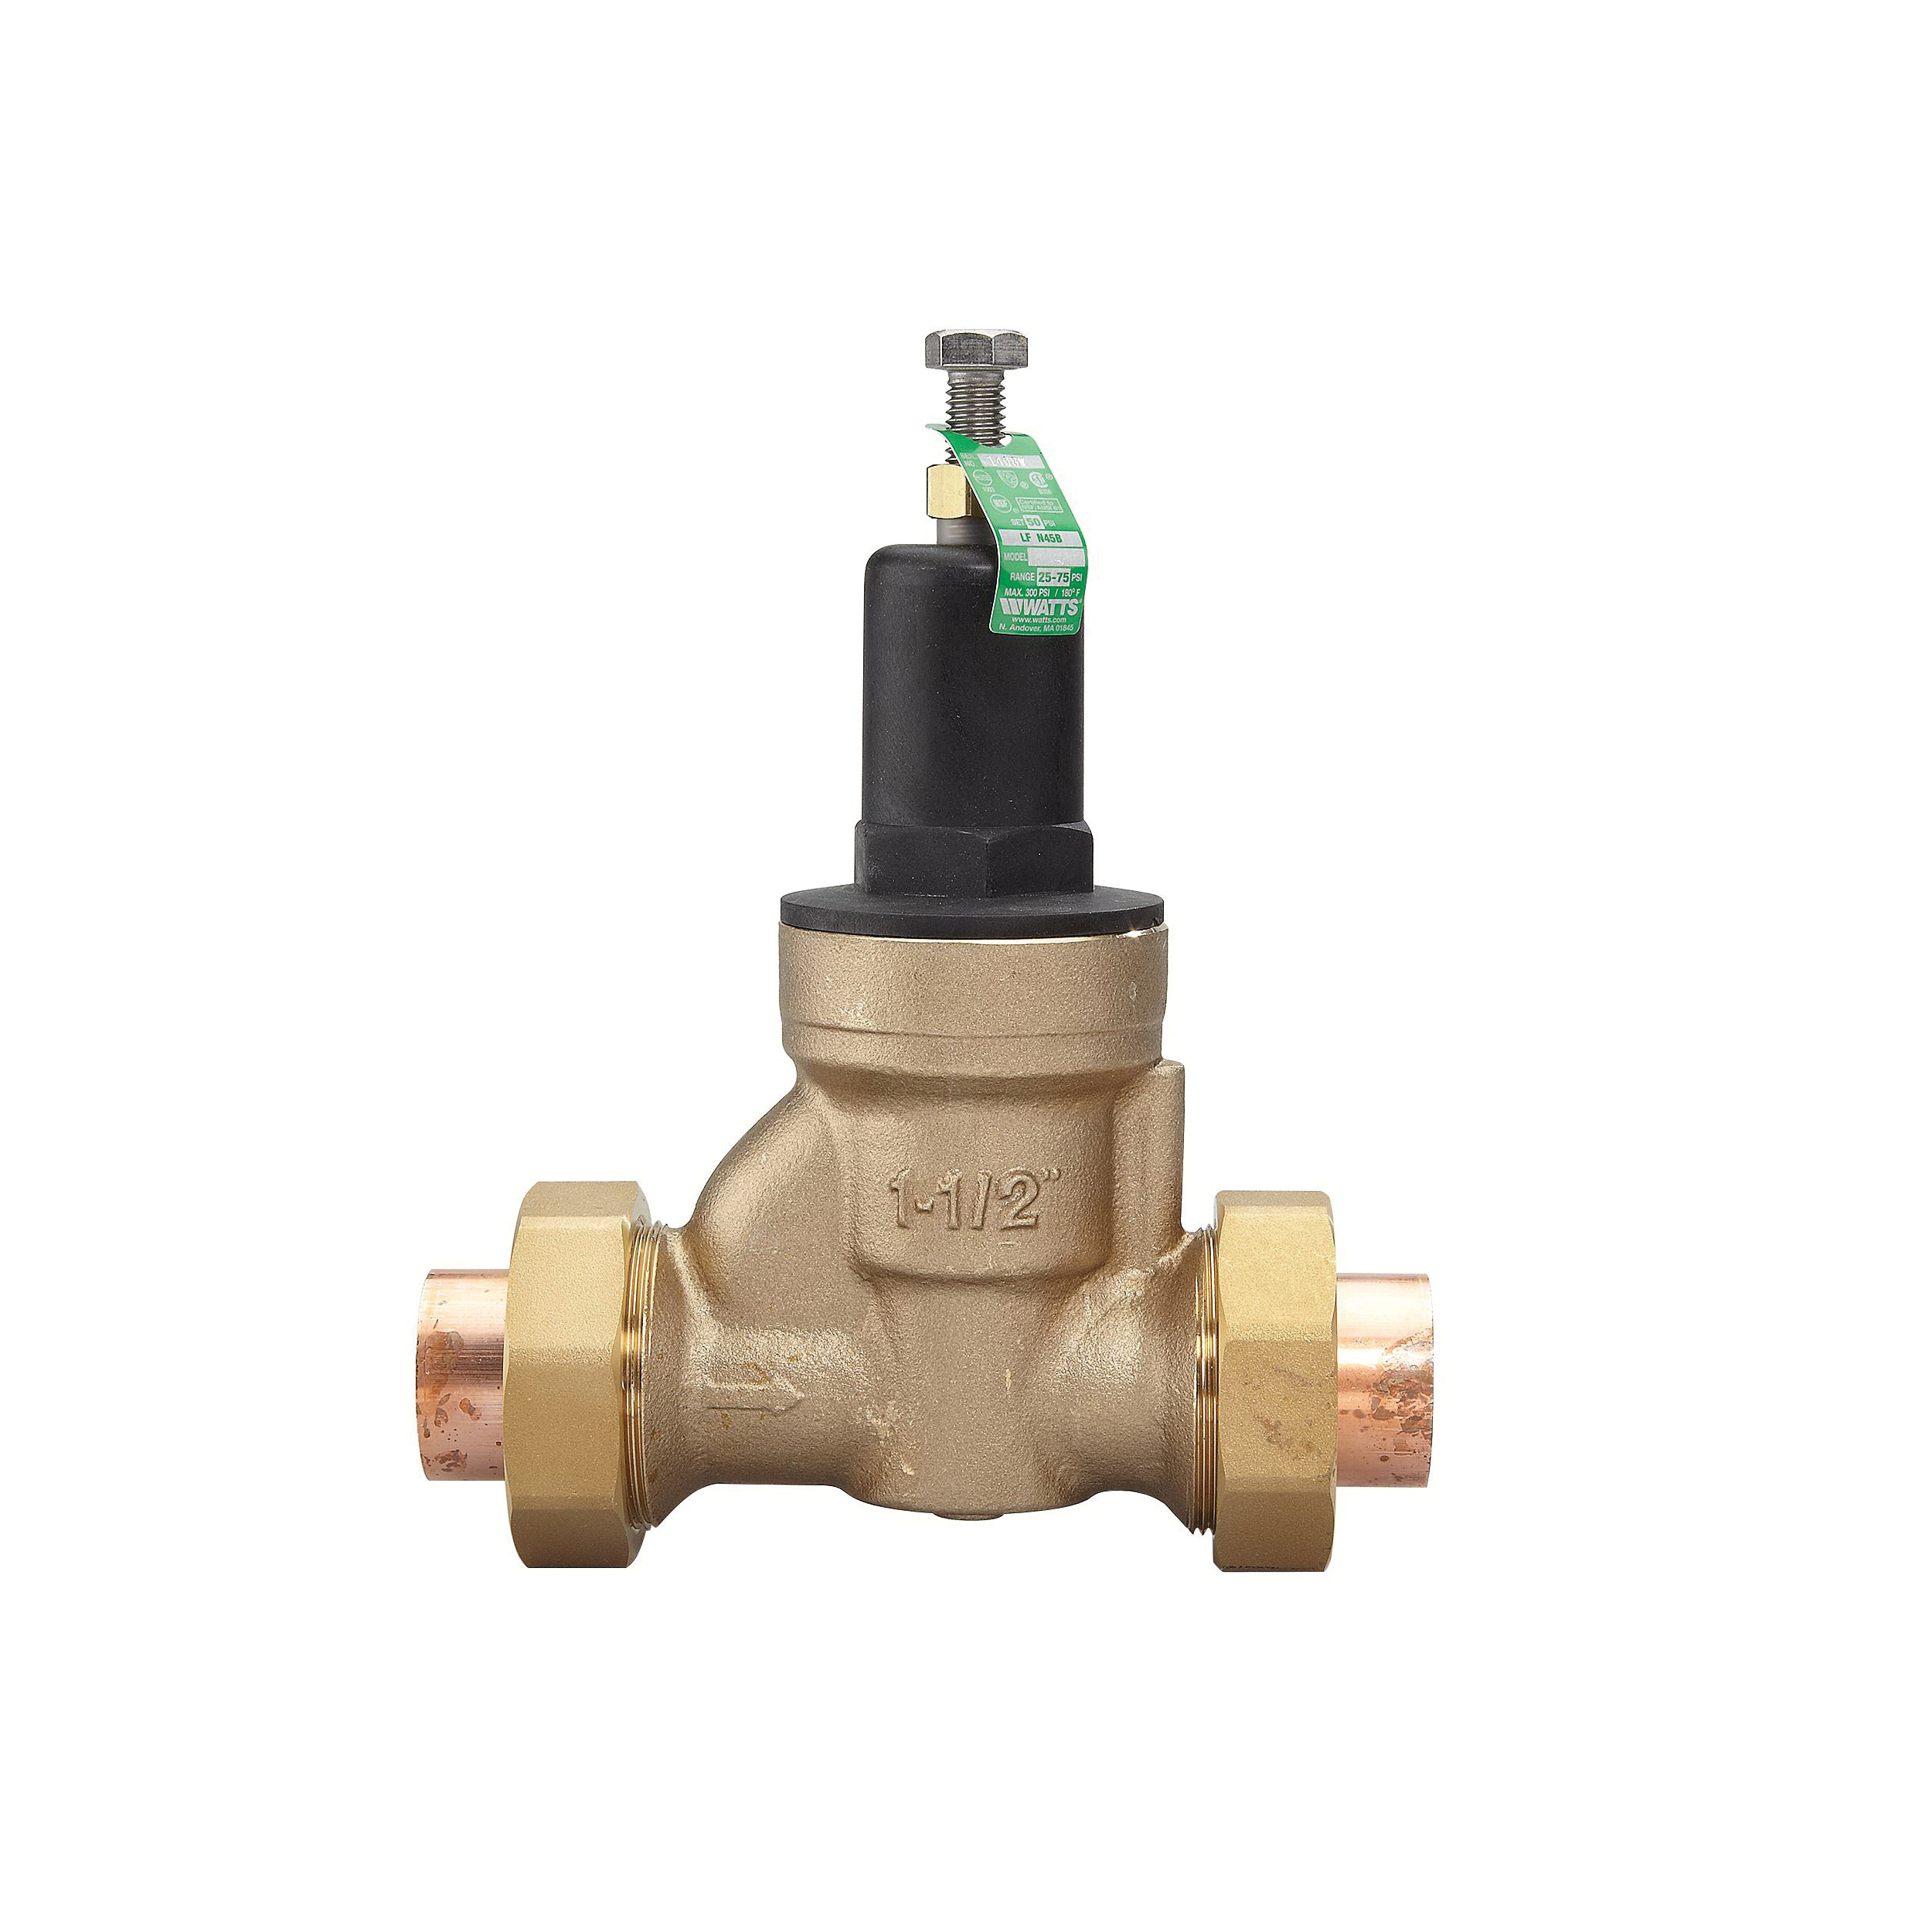 WATTS® LFN45B Lead Free Pressure Reducing Valve, 1-1/4 in, Double Solder Union Inlet x Solder Union Outlet